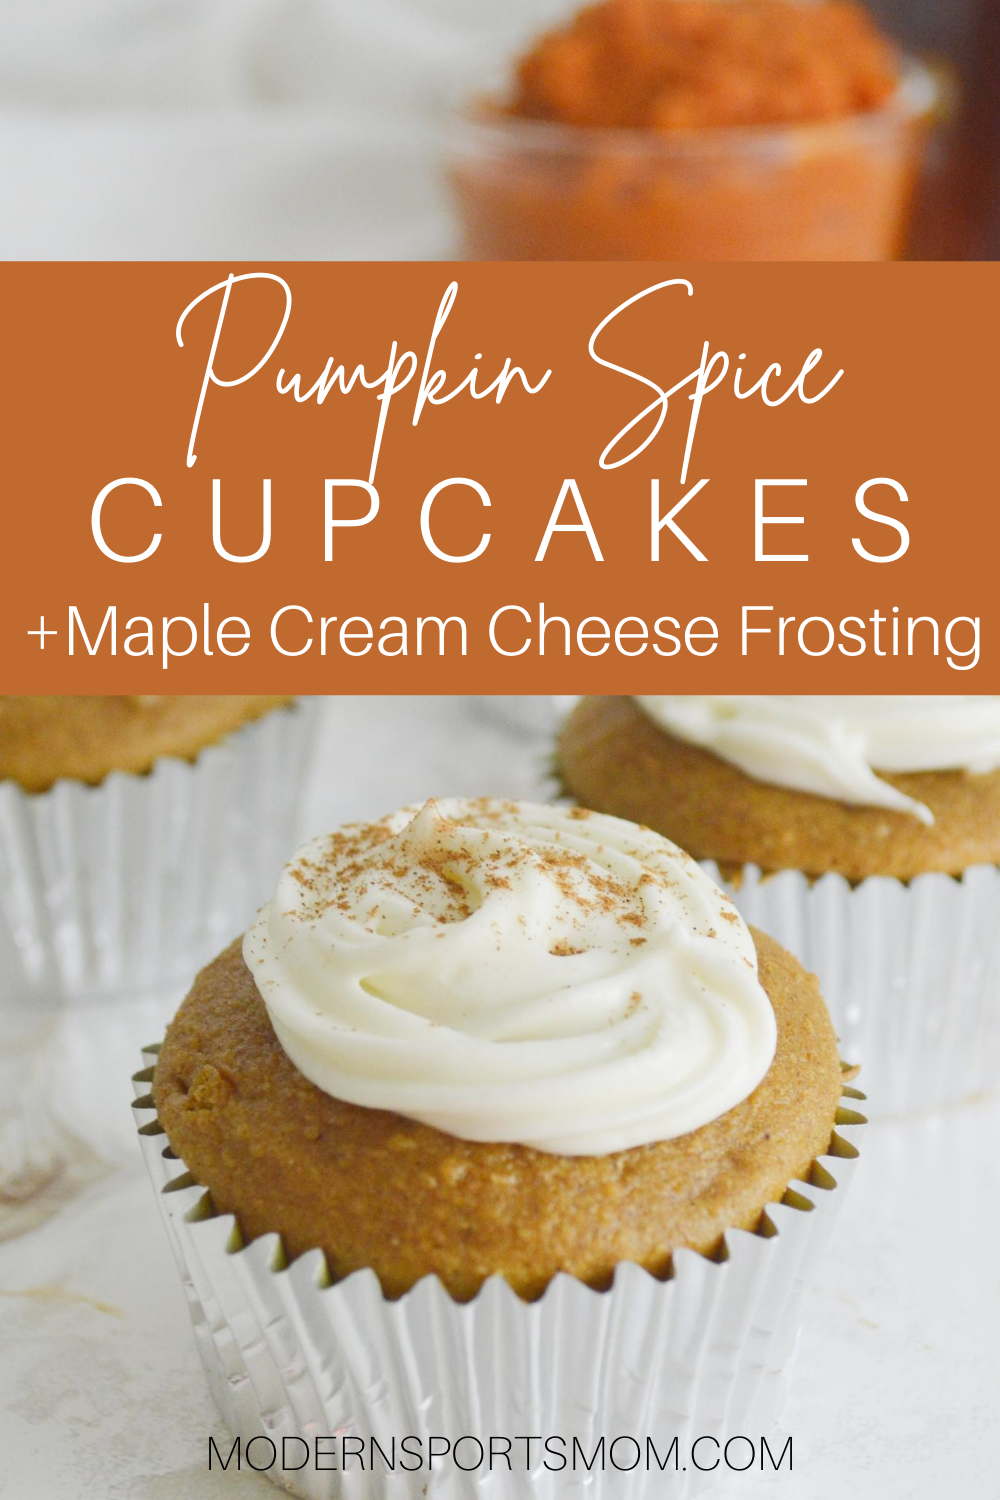 Pumpkin Spice Cupcakes with Maple Cream Cheese Frosting, easy to make with cake mix!